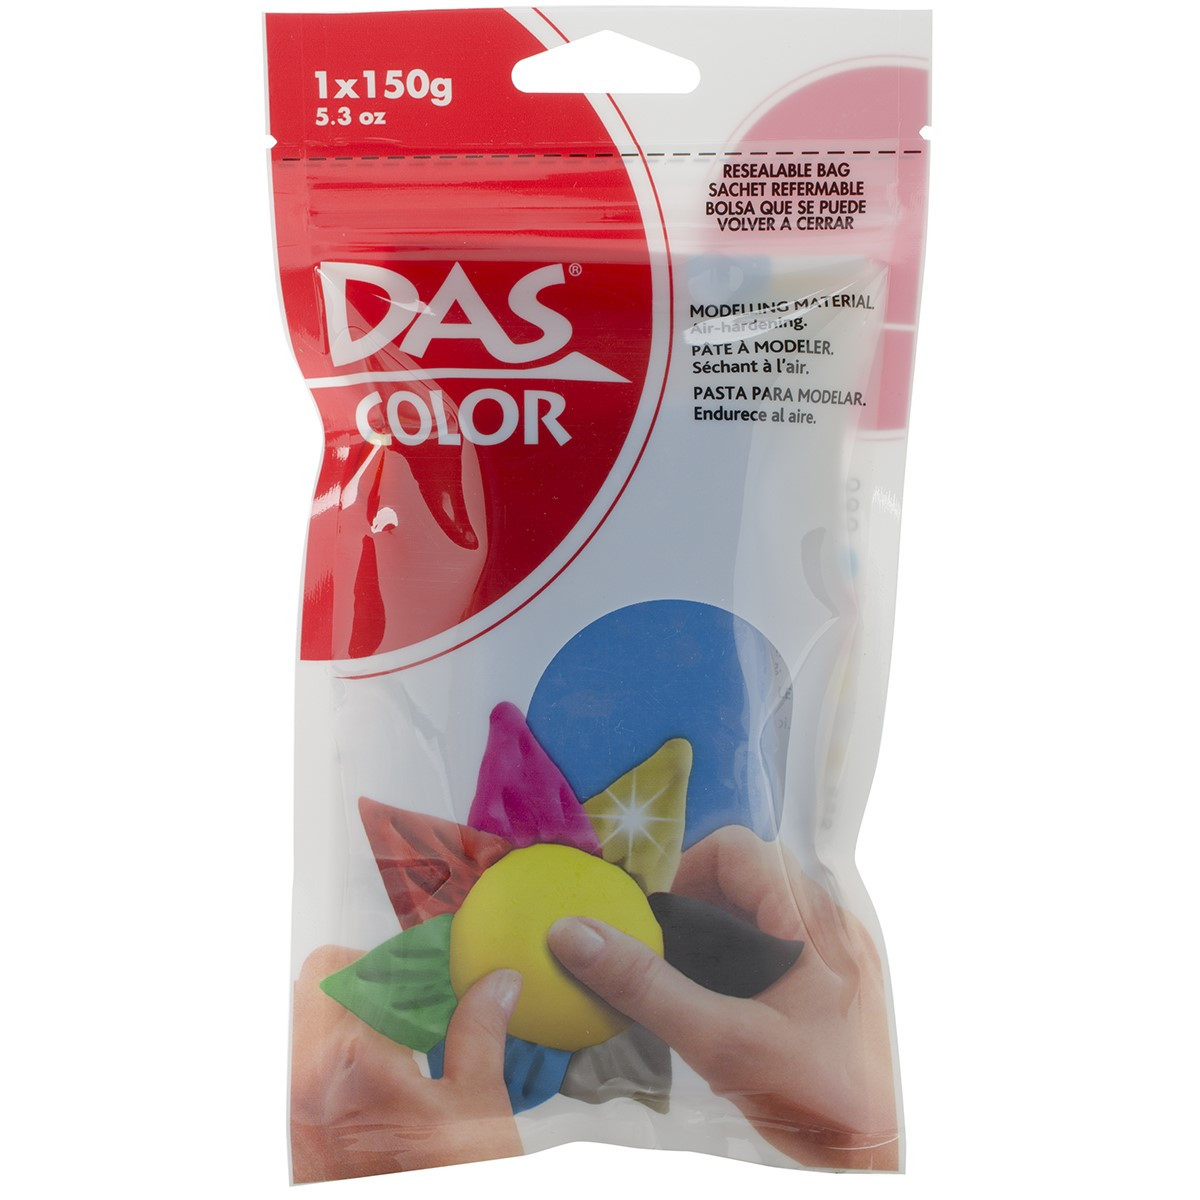 Lovely Das Color Air Dry Clay 5 3oz Turquoise Colored Air Dry Clay Of Amazing 47 Pictures Colored Air Dry Clay